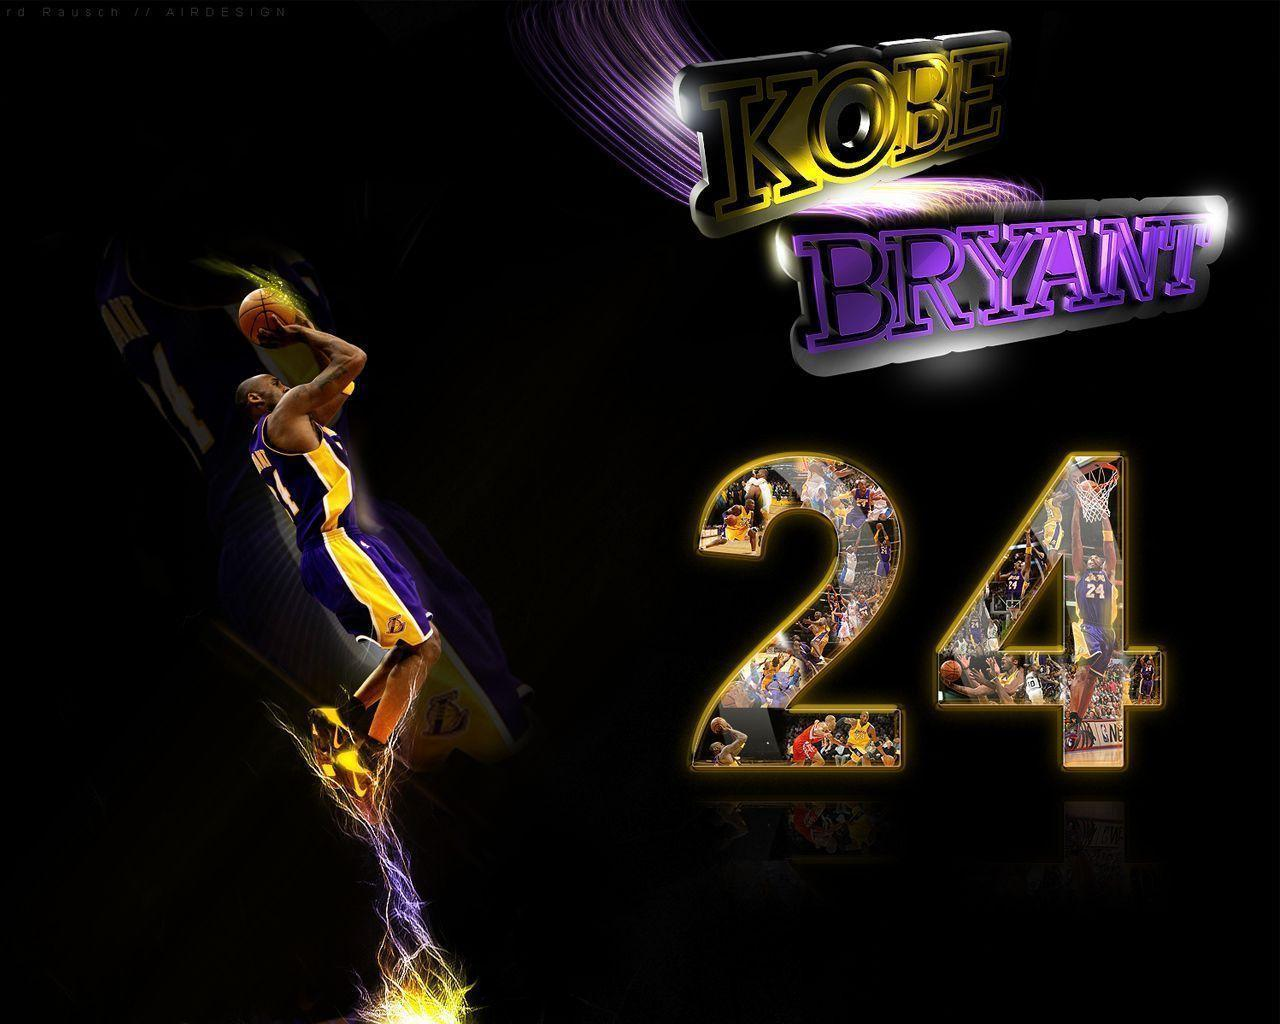 Kobe Bryant Logo Wallpaper Free Is Cool Wallpapers